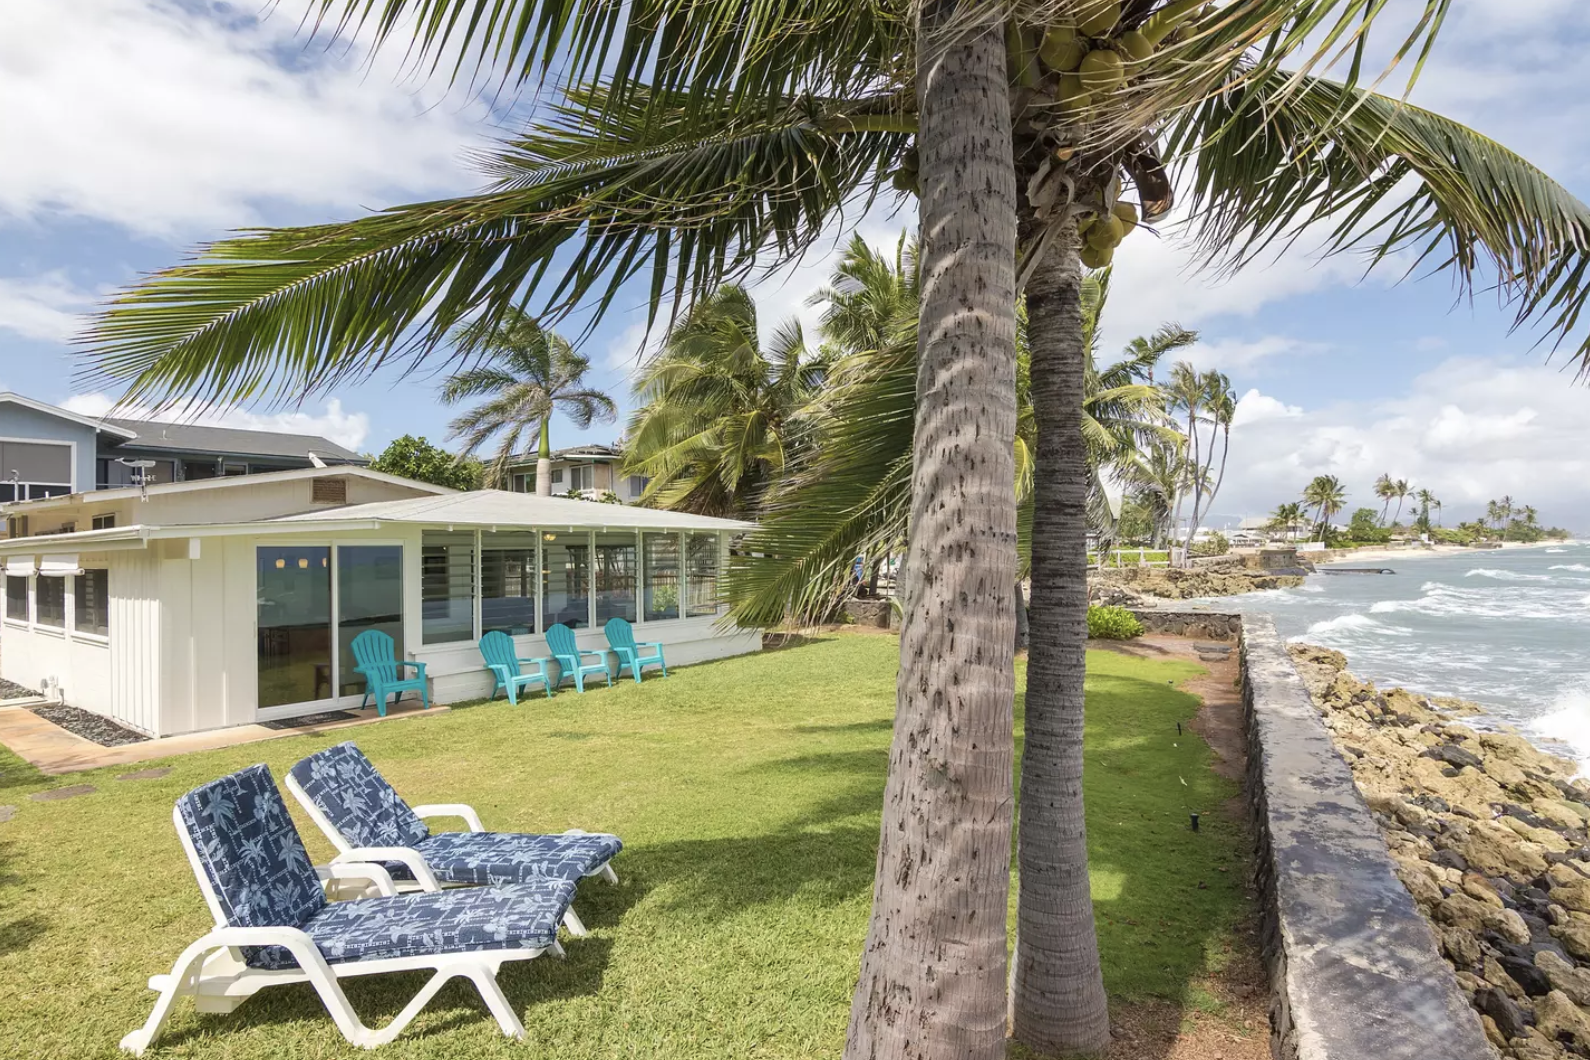 5 Best Beachfront Airbnbs In Hawaii Ewa Beach Bungalow Oahu Airbnb